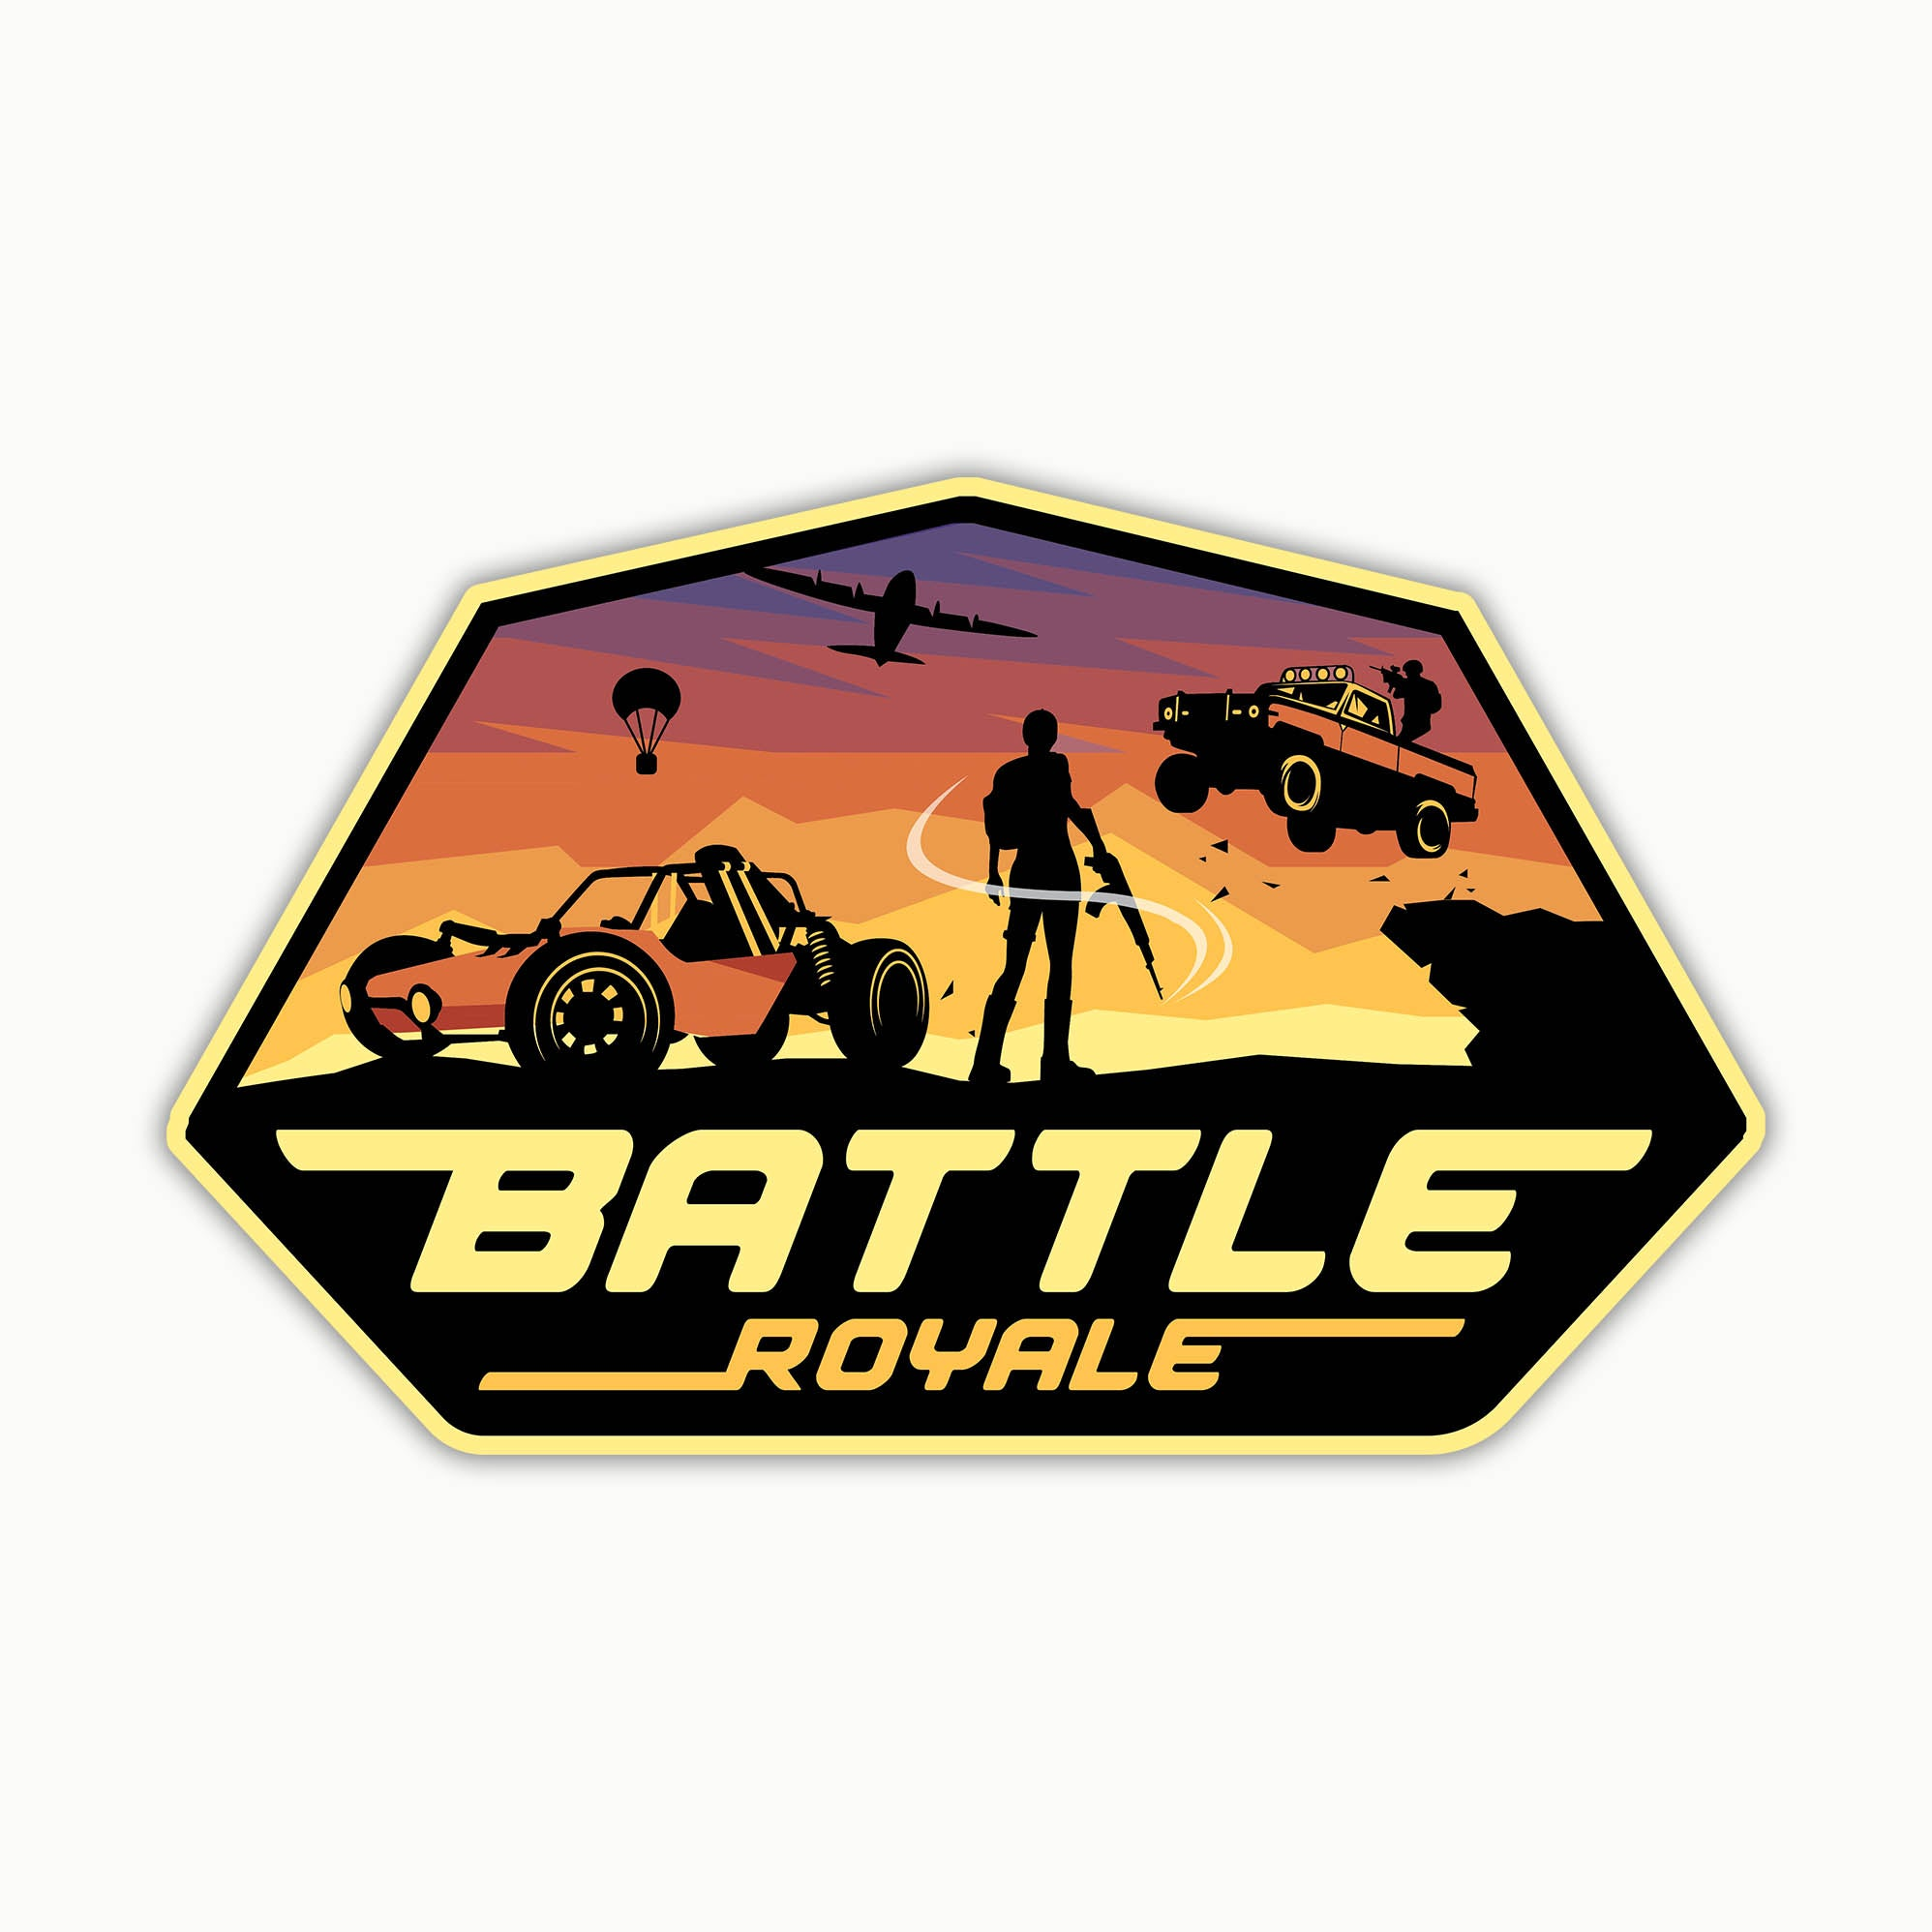 Battle Royale | Sticker